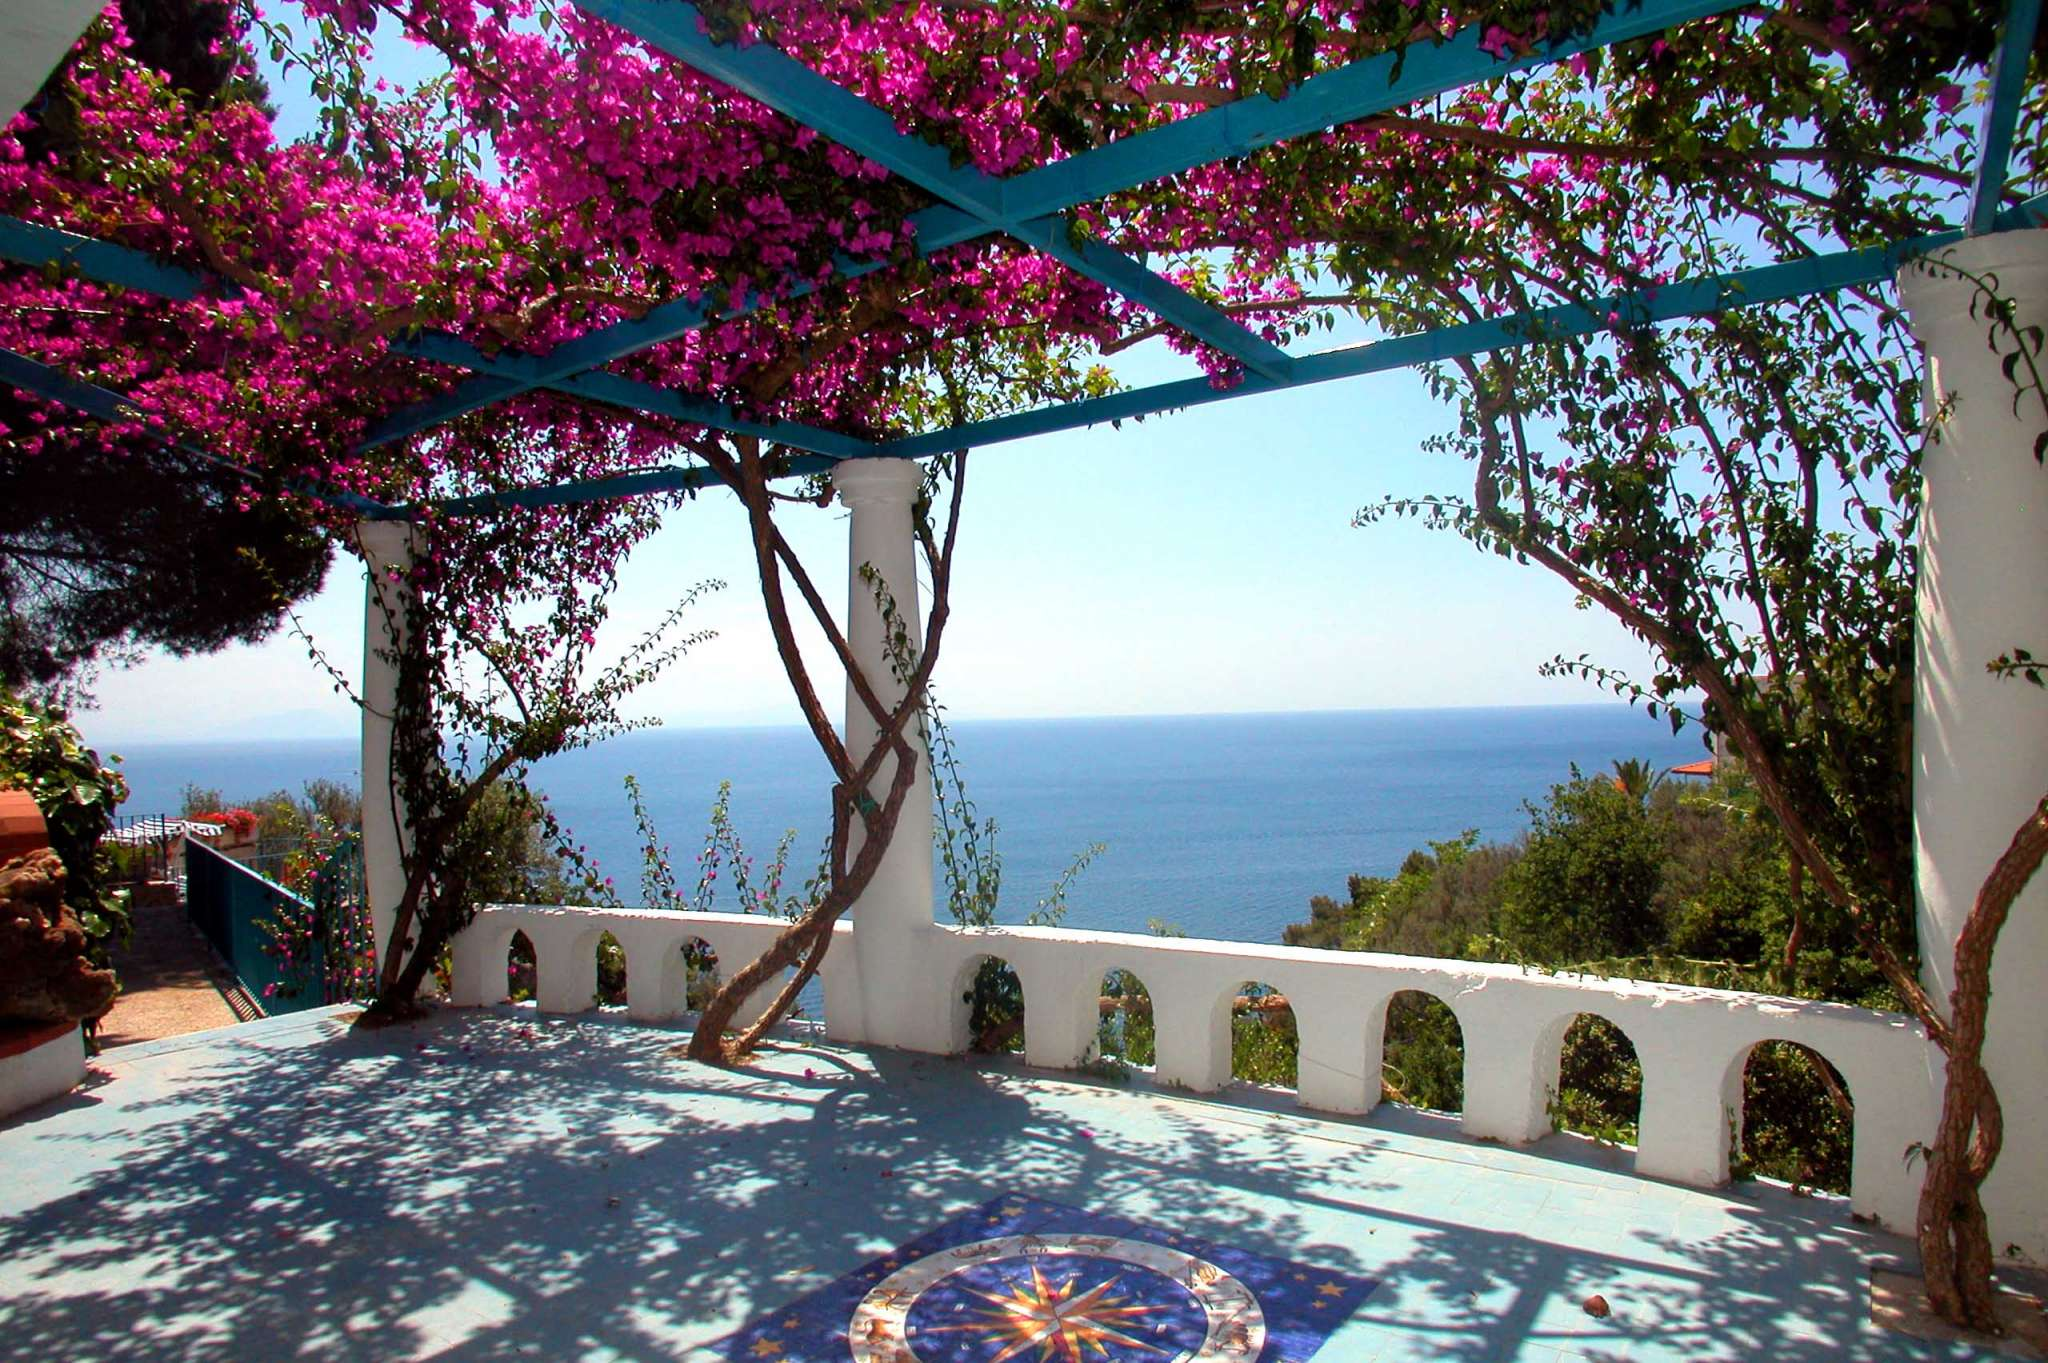 Villa Agnese Beautiful Villa With Pool For Rent In Amalfi